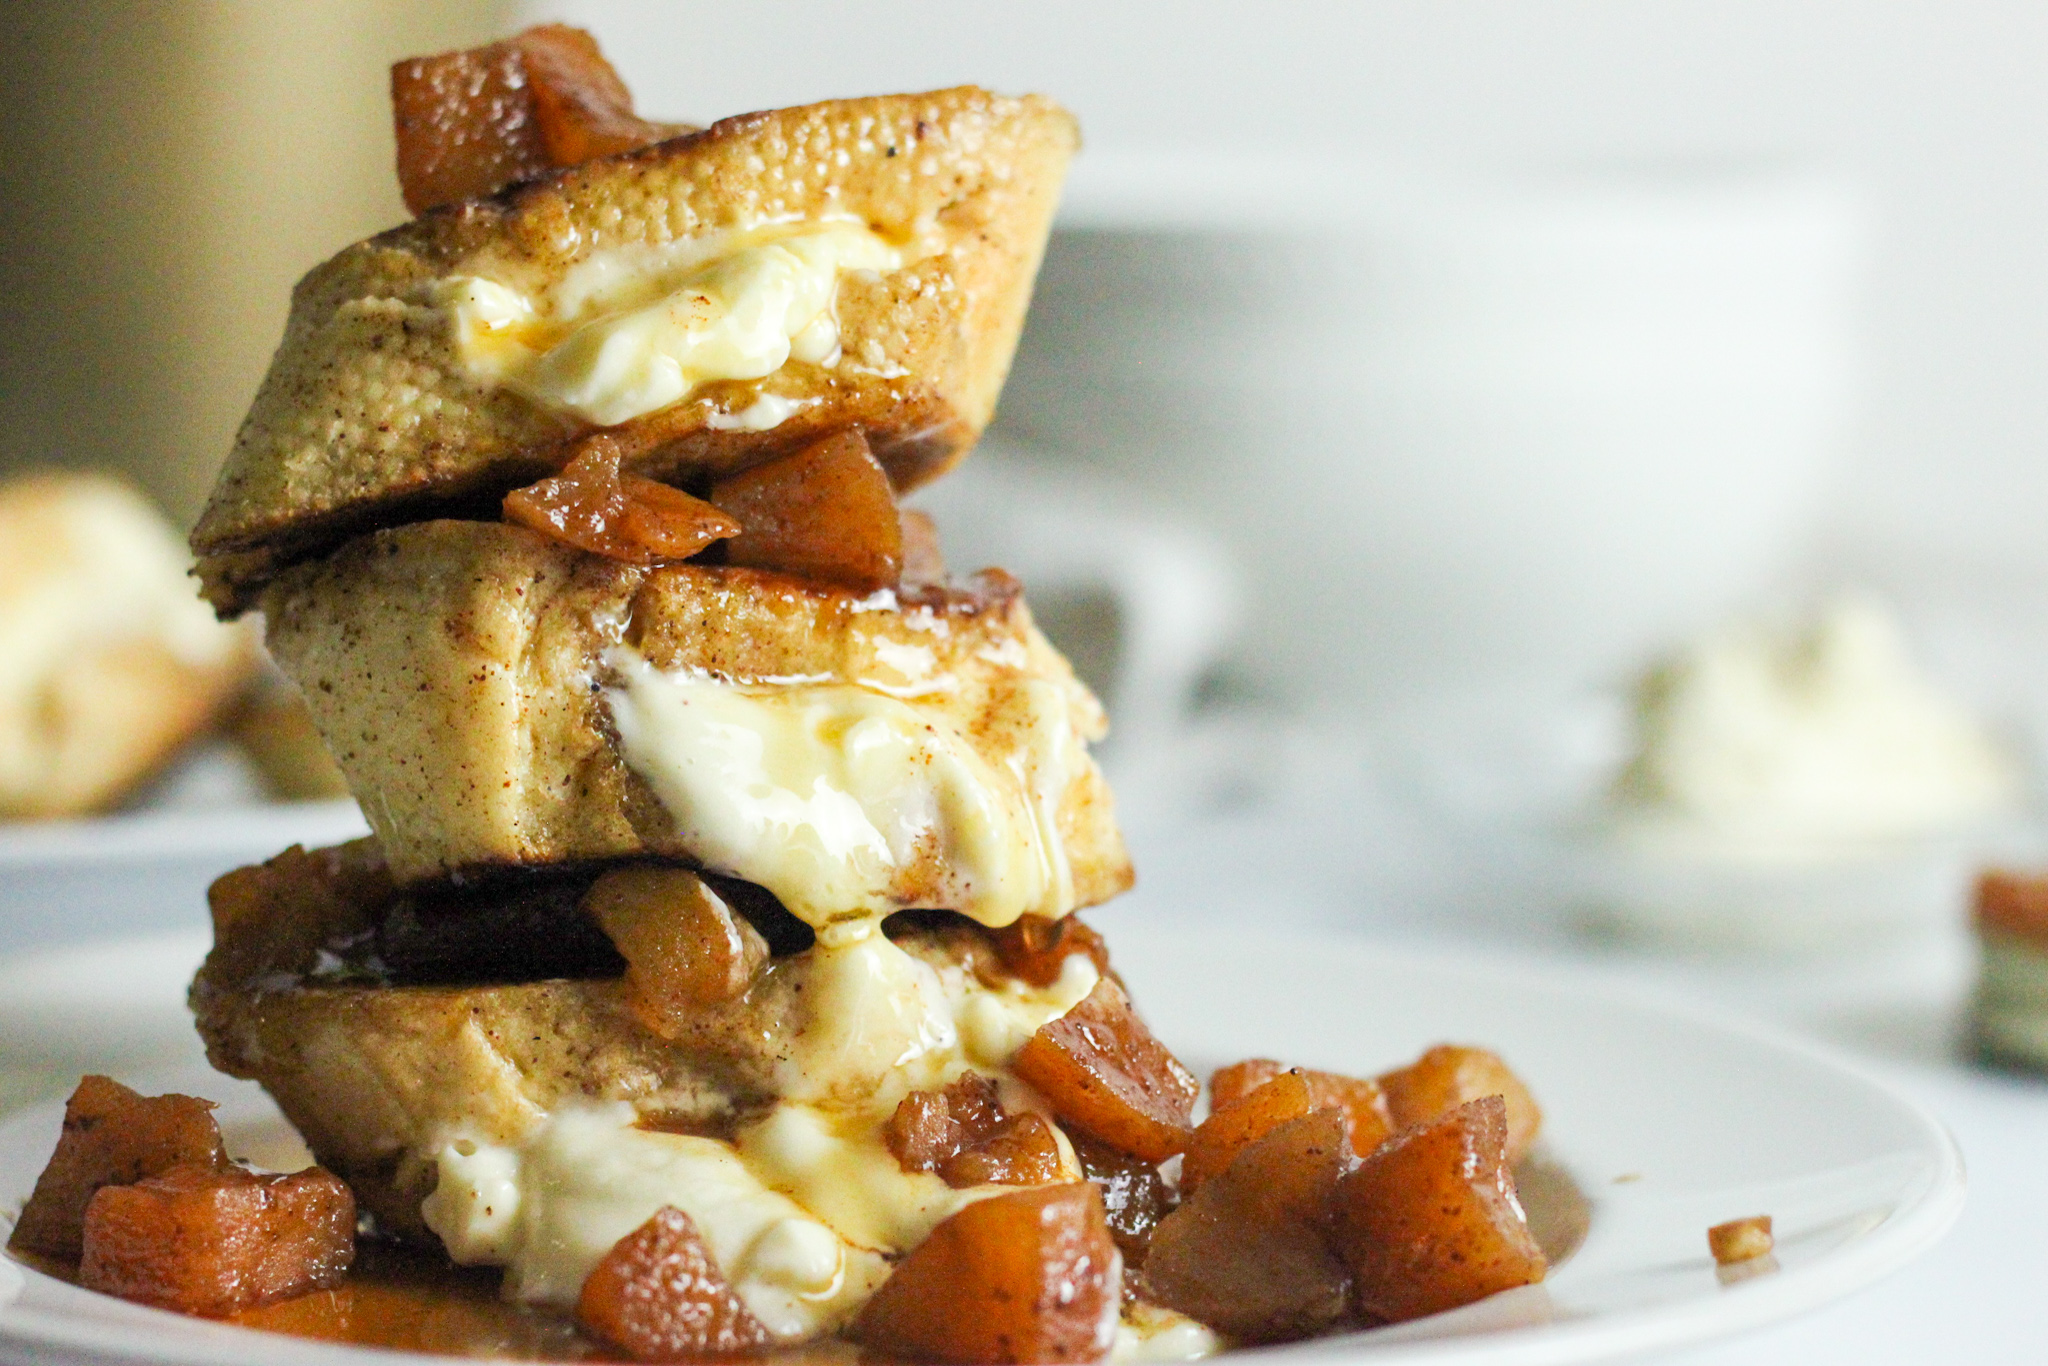 The BEST Stuffed French Toast with Apple Compote